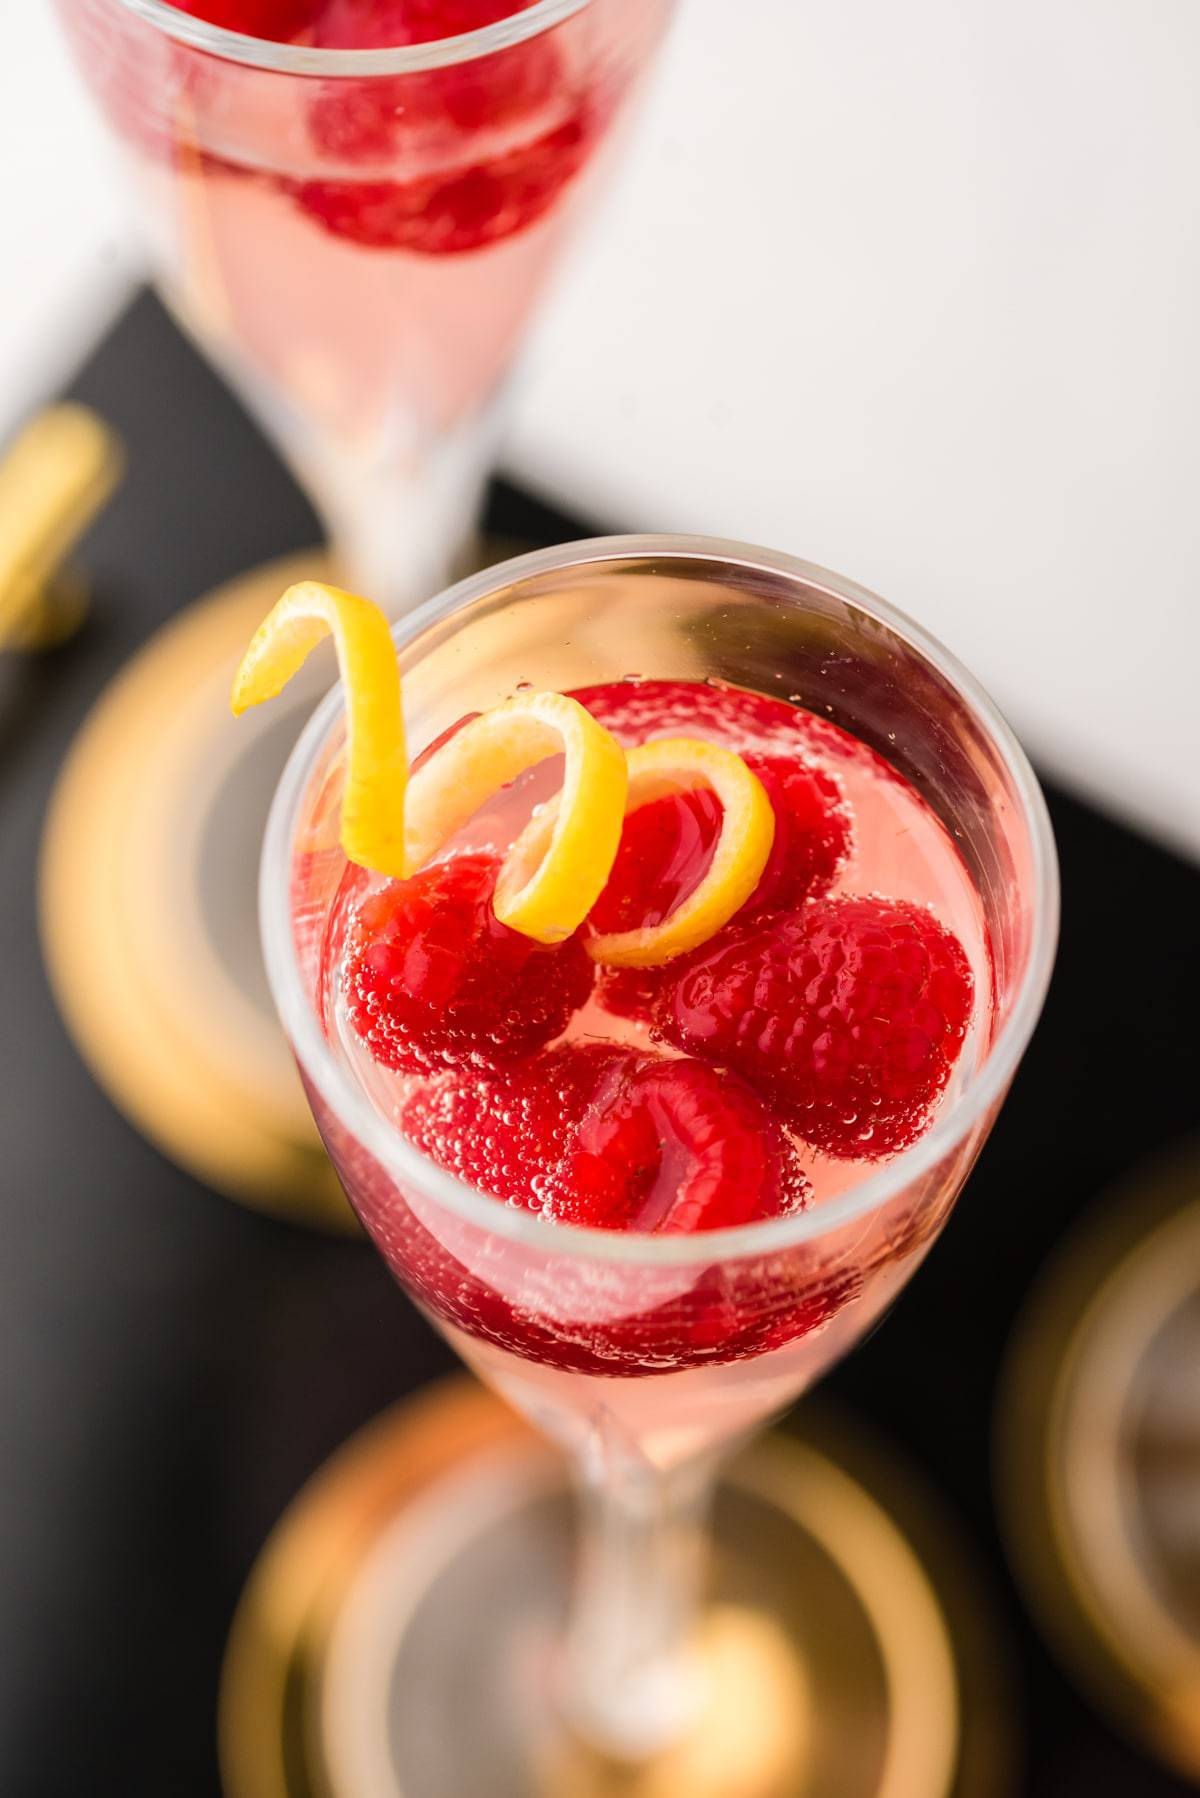 French kiss cocktail with raspberries and a lemon twist.